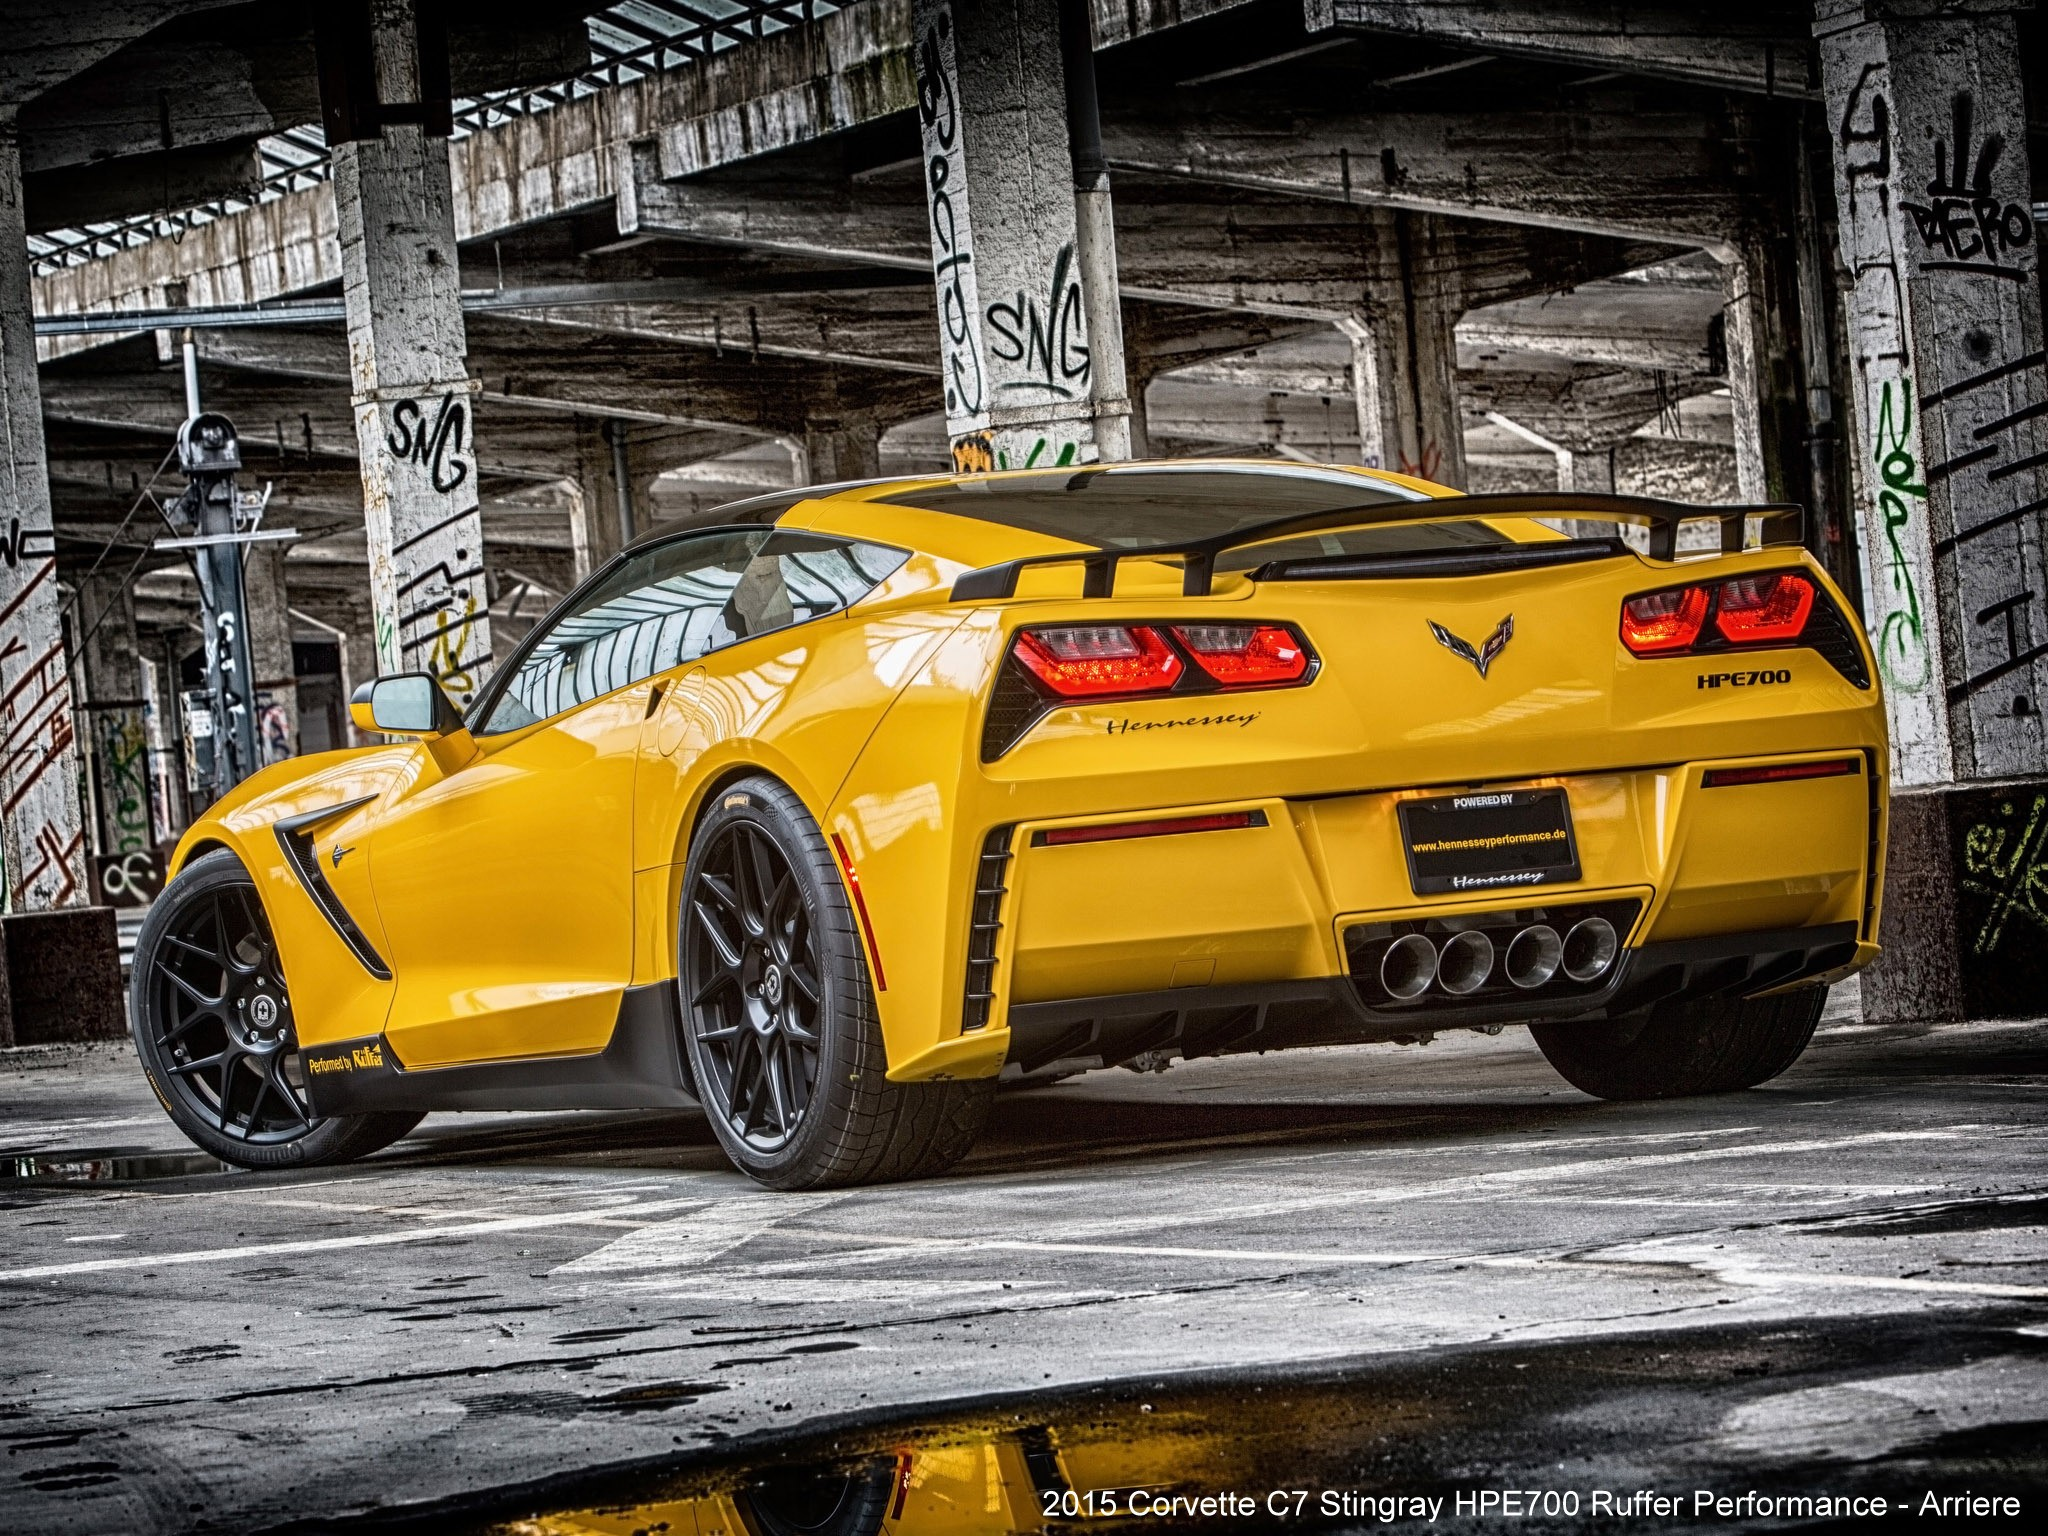 2015 Chevrolet Corvette C7 Stingray HPE700 - Ruffer-performance